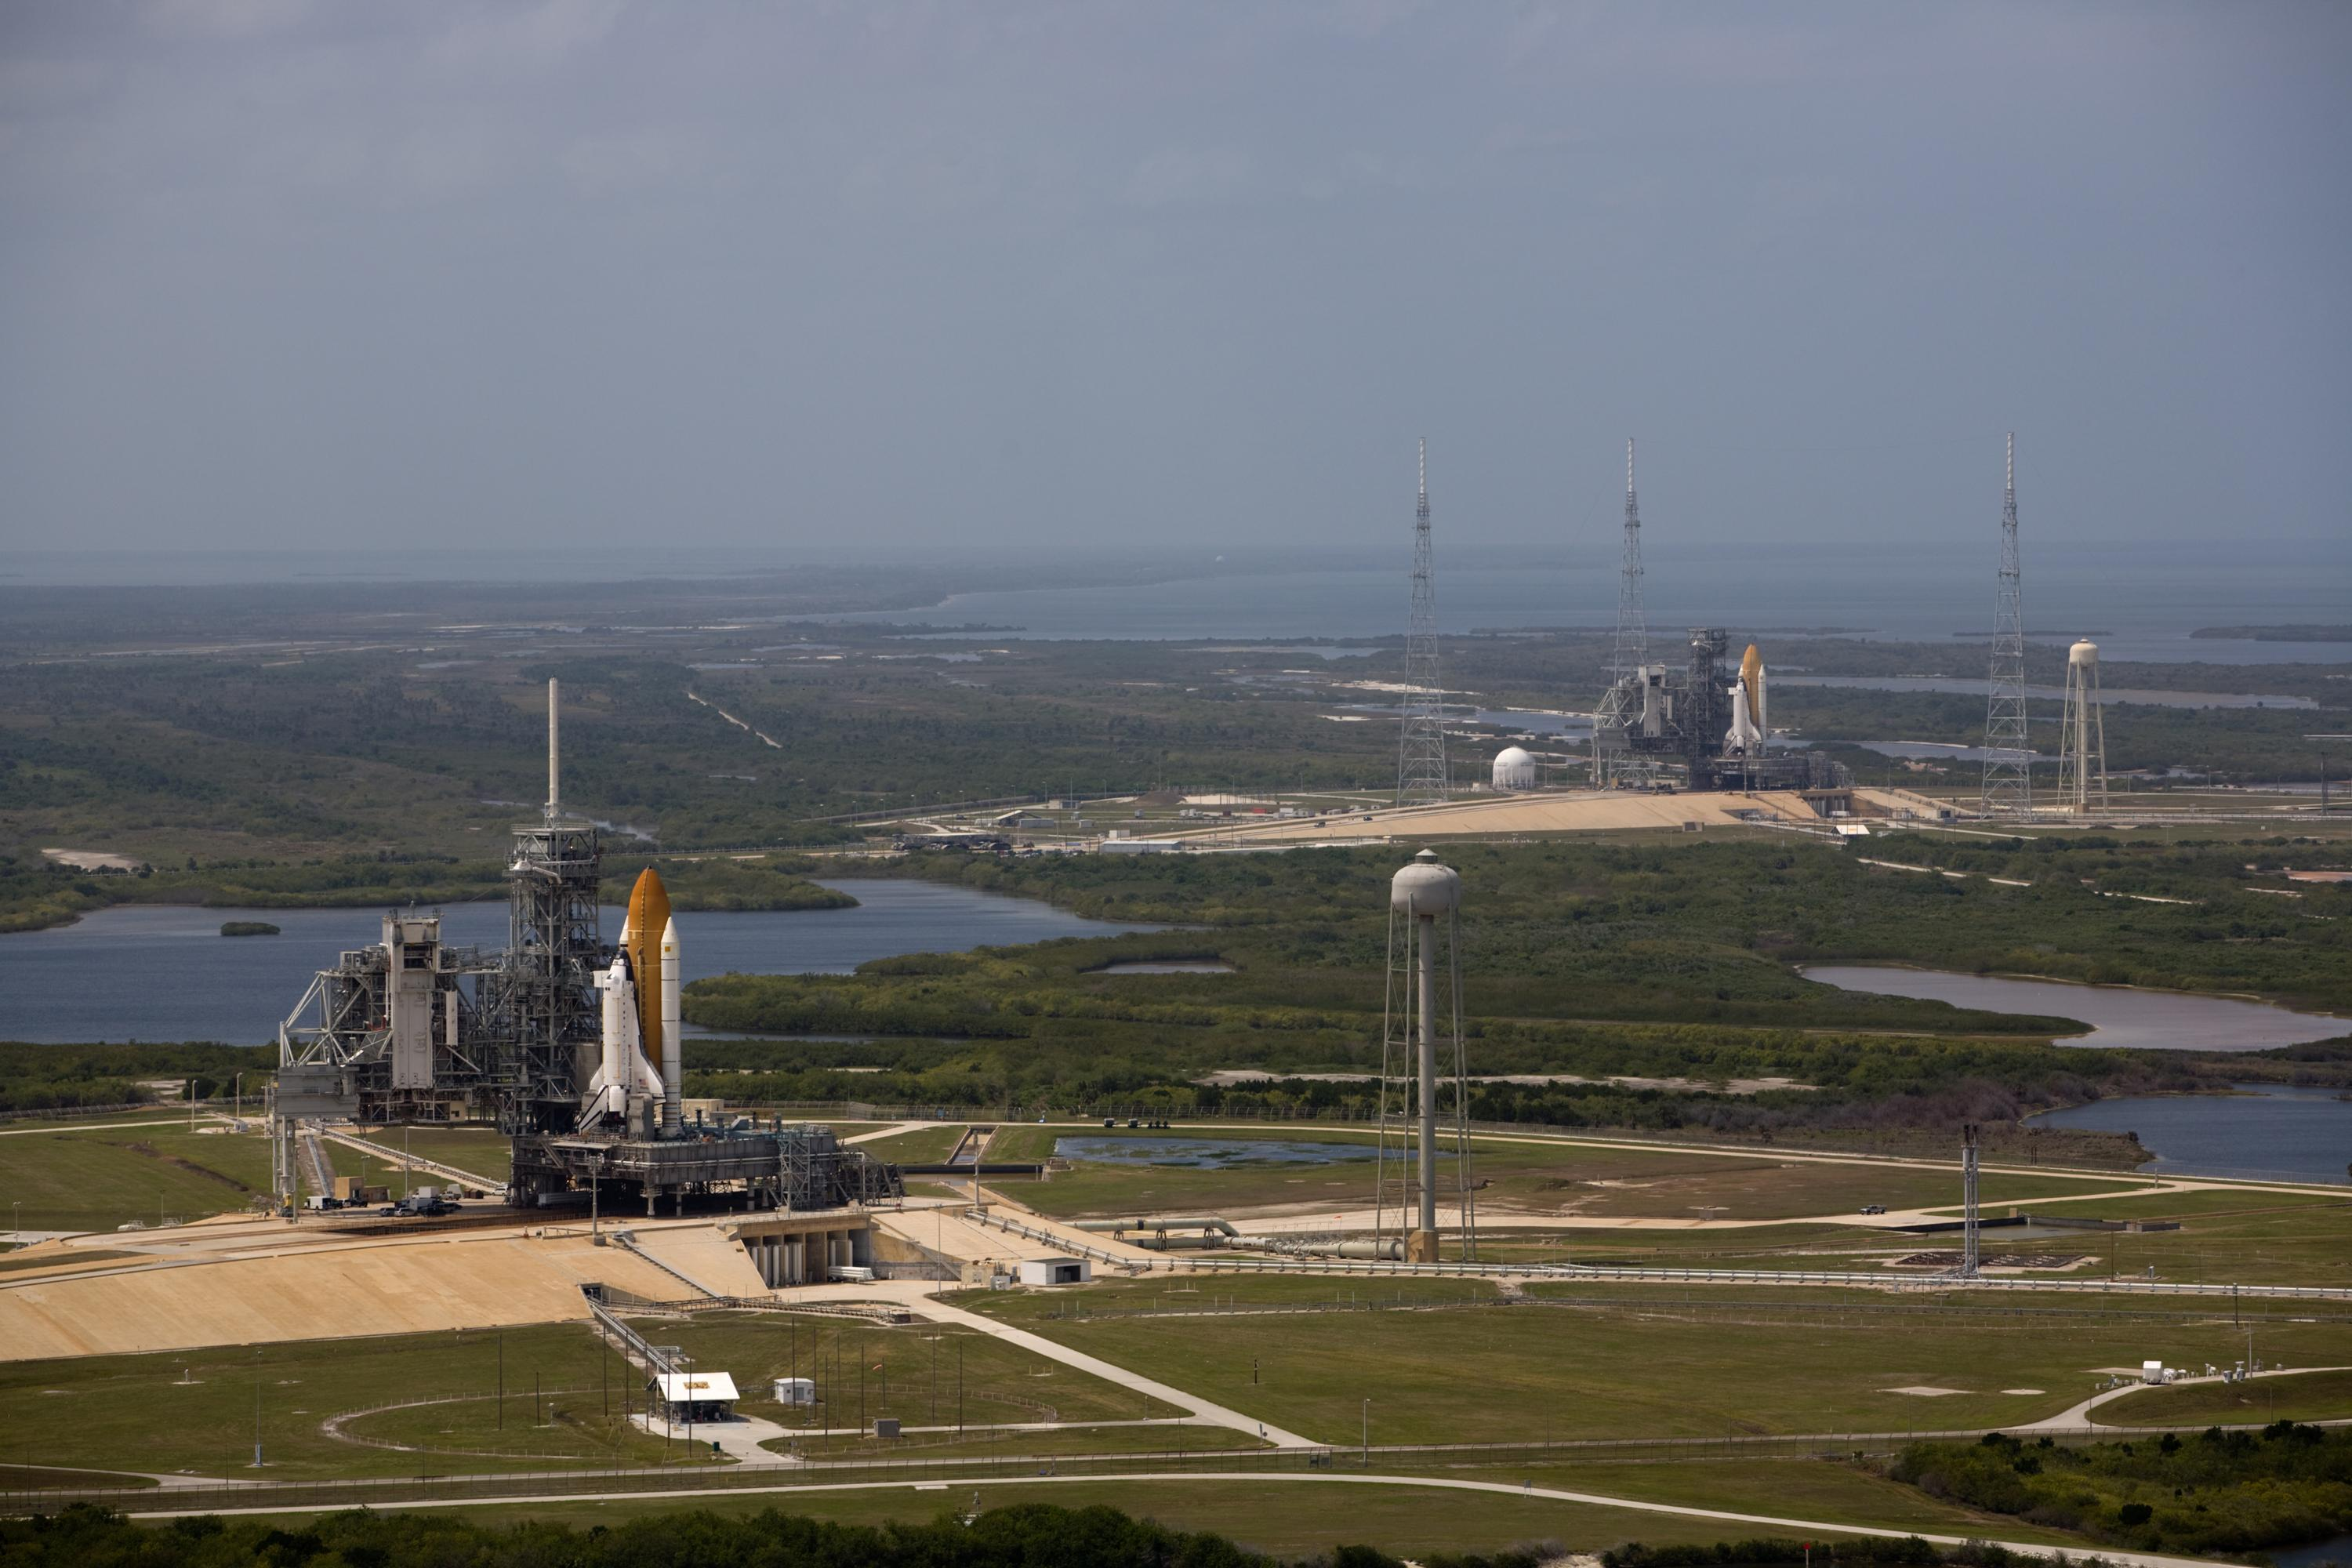 Launch pads, runways, facilities: NASA's grand shuttle ...